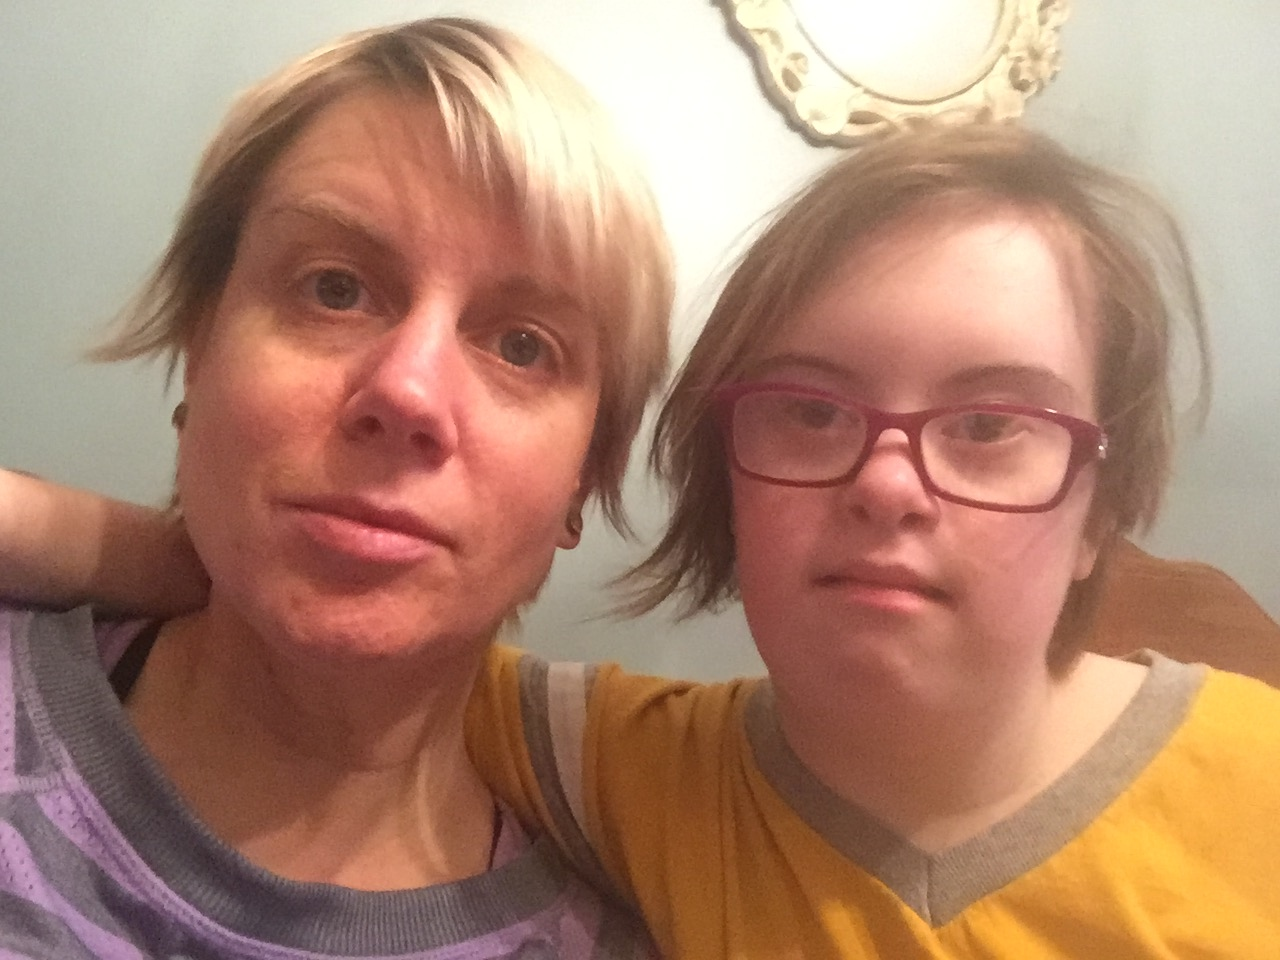 a blog post about a person with down syndrome